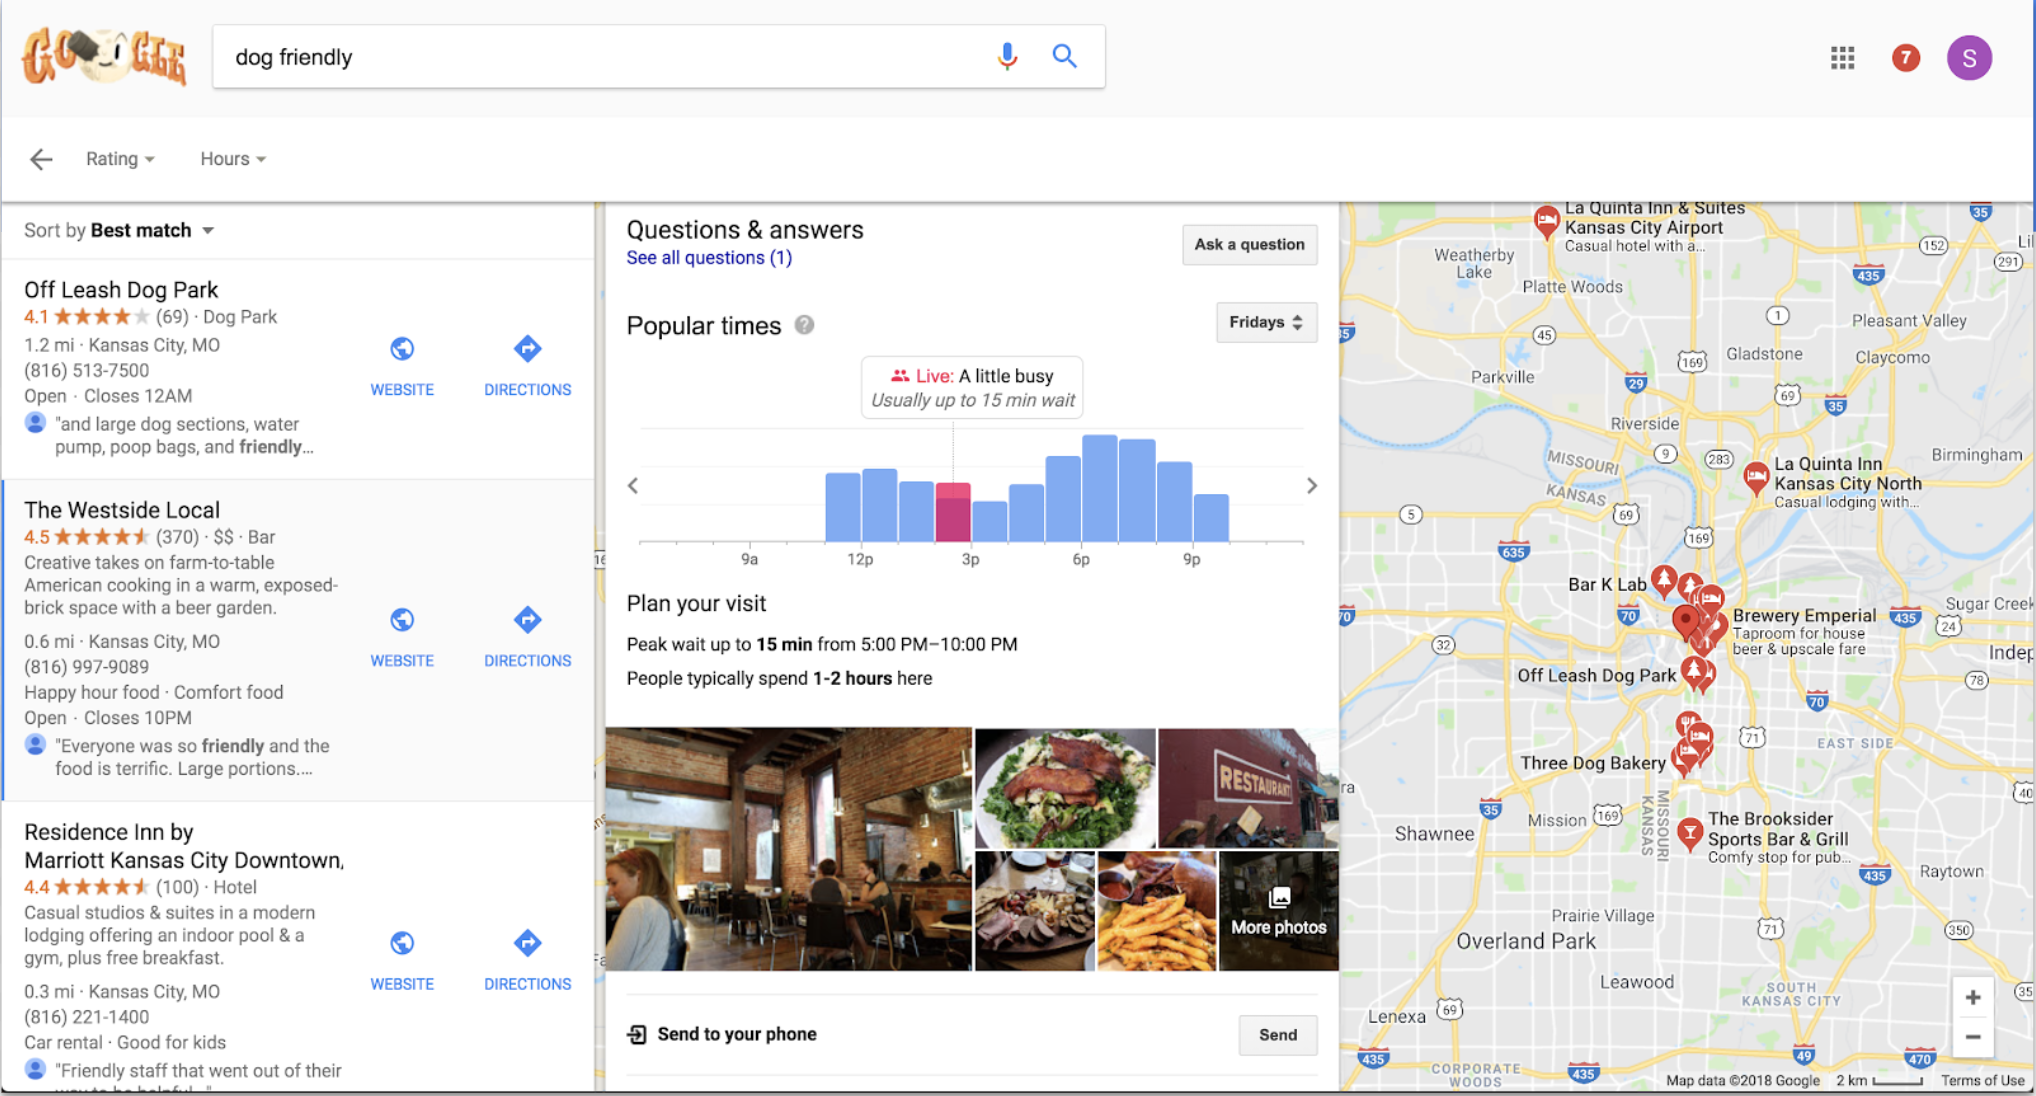 Google Desktop detailed results and map